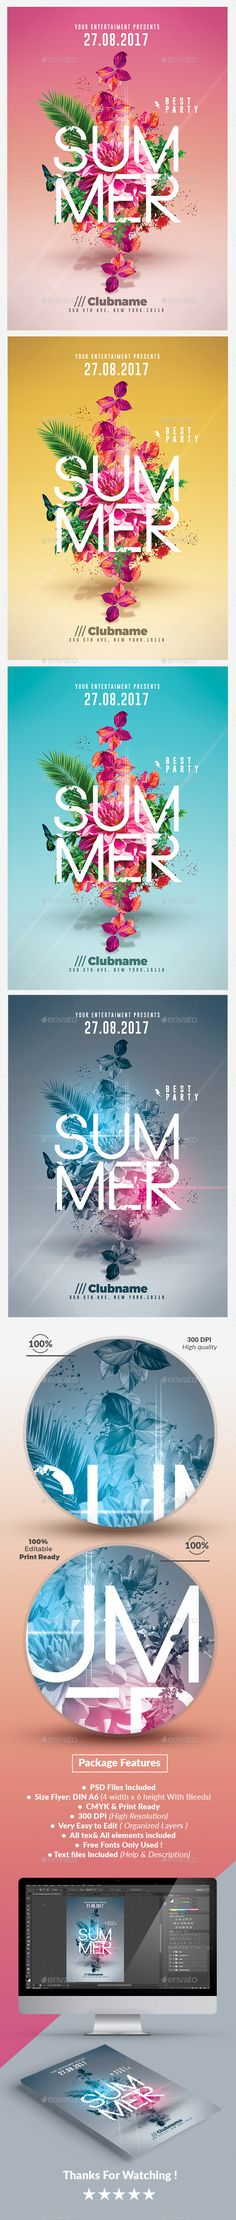 Summer Party Flyer Template PSD. Download here: https://graphicriver.net/item/summer-party-psd-flyer-templates/17517172?ref=ksioks